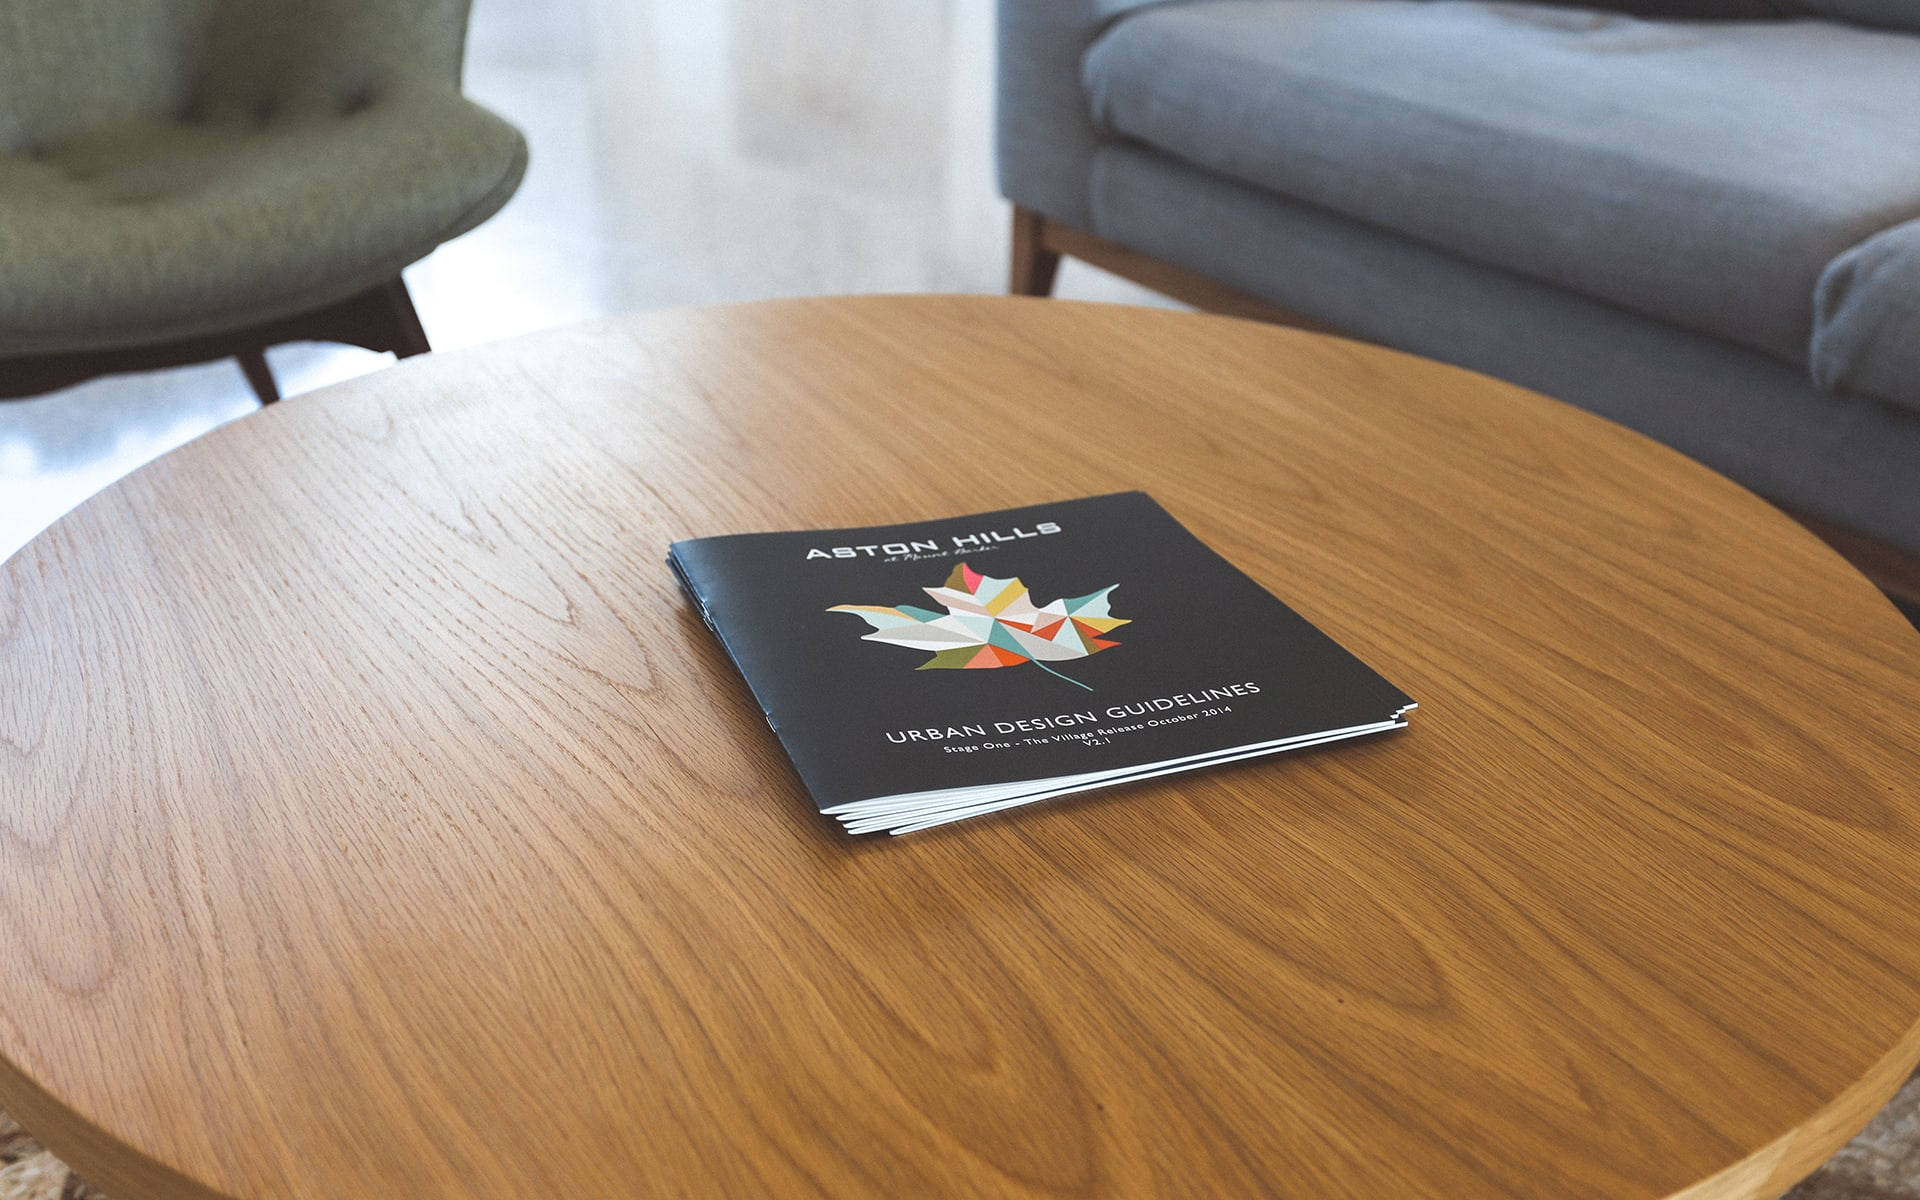 Aston Hills Brochure On Table